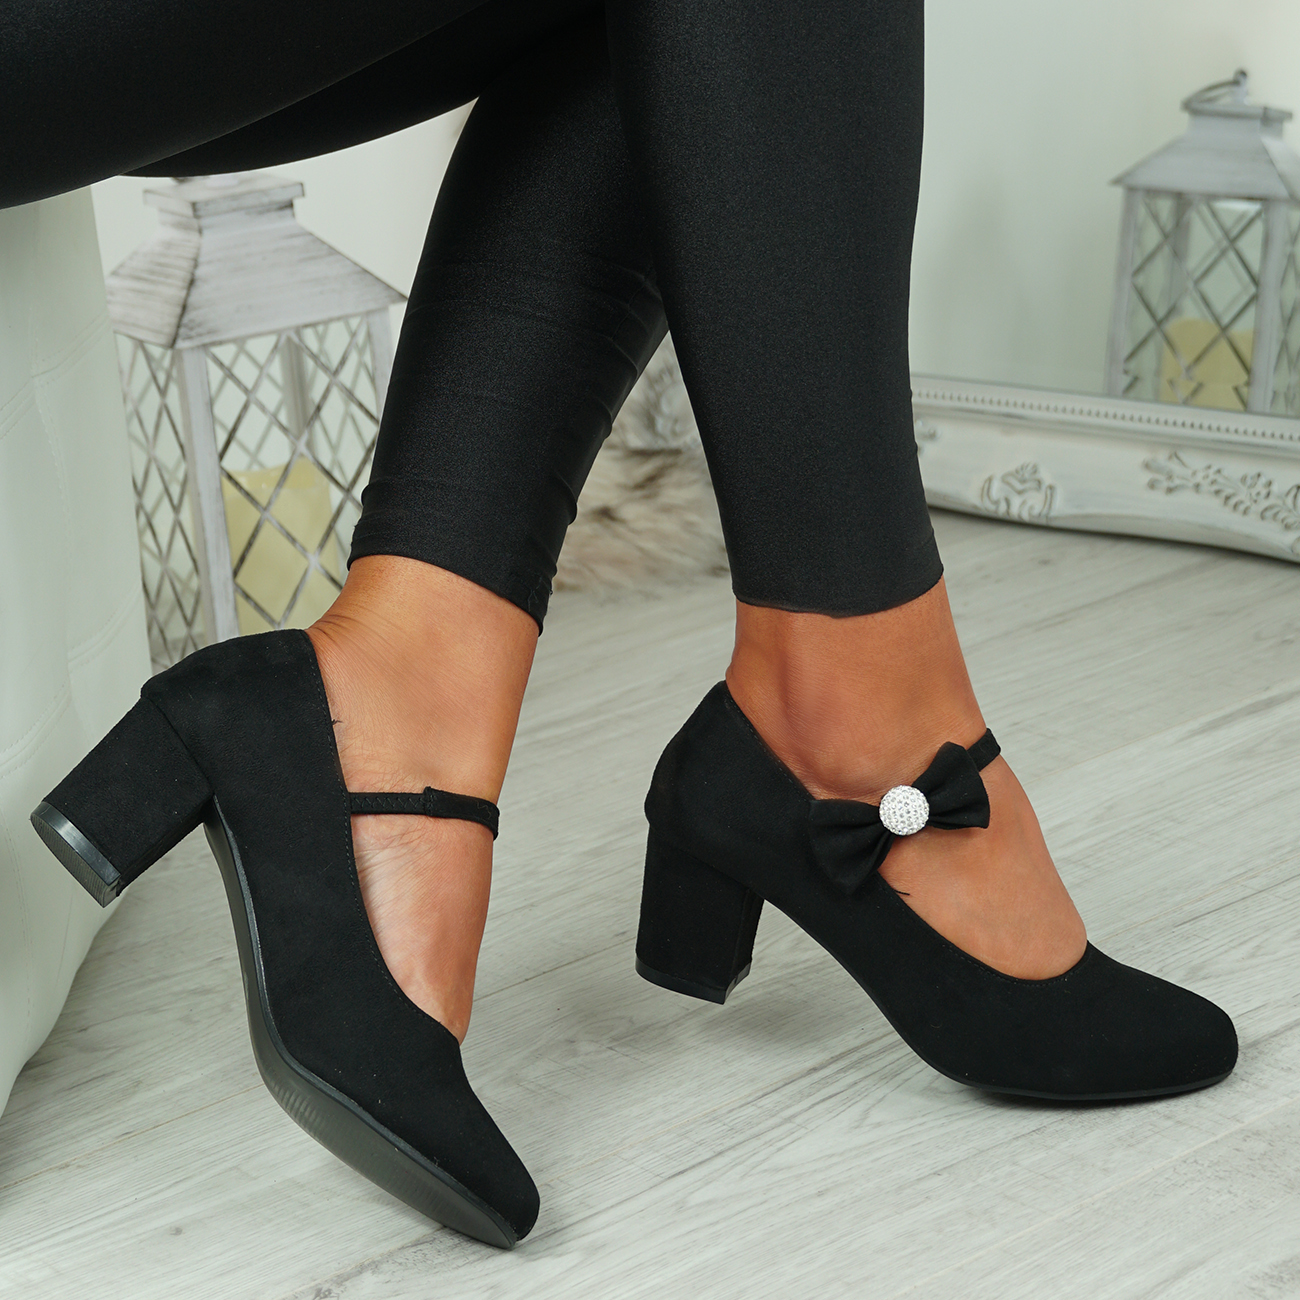 NEW-WOMENS-BLOCK-HEEL-PUMPS-BOW-BUCKLE-STRAP-ROUNDED-TOE-CASUAL-SHOES-SIZE thumbnail 10